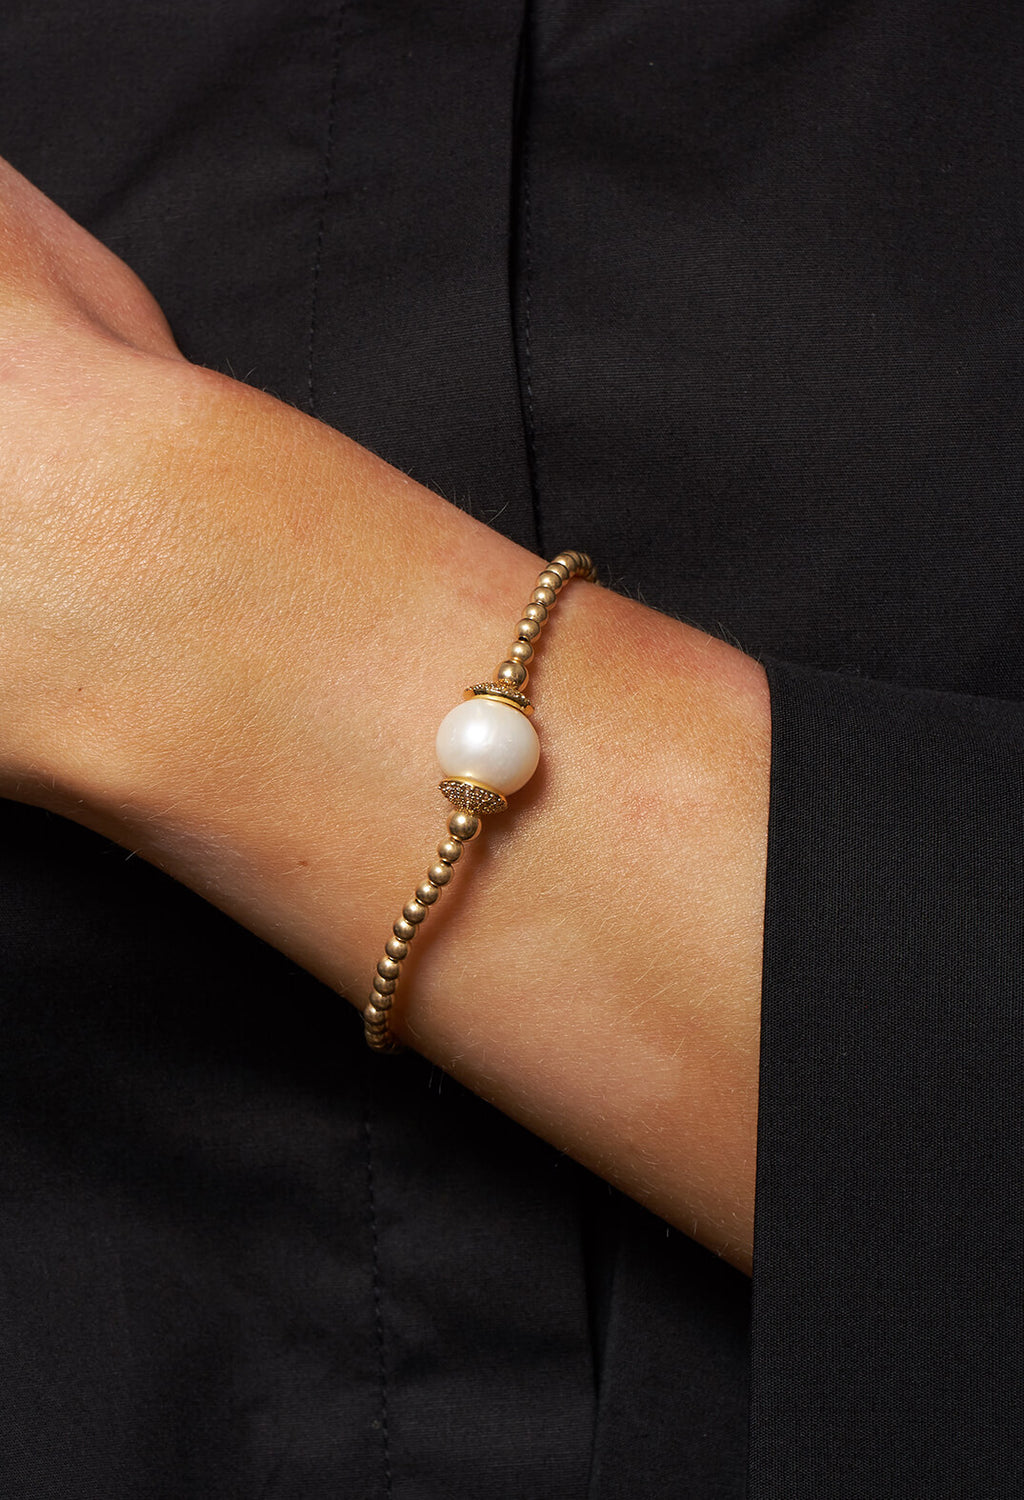 Gold 3mm Balls with Cubic Zircon and Pearl Bracelet in Gold